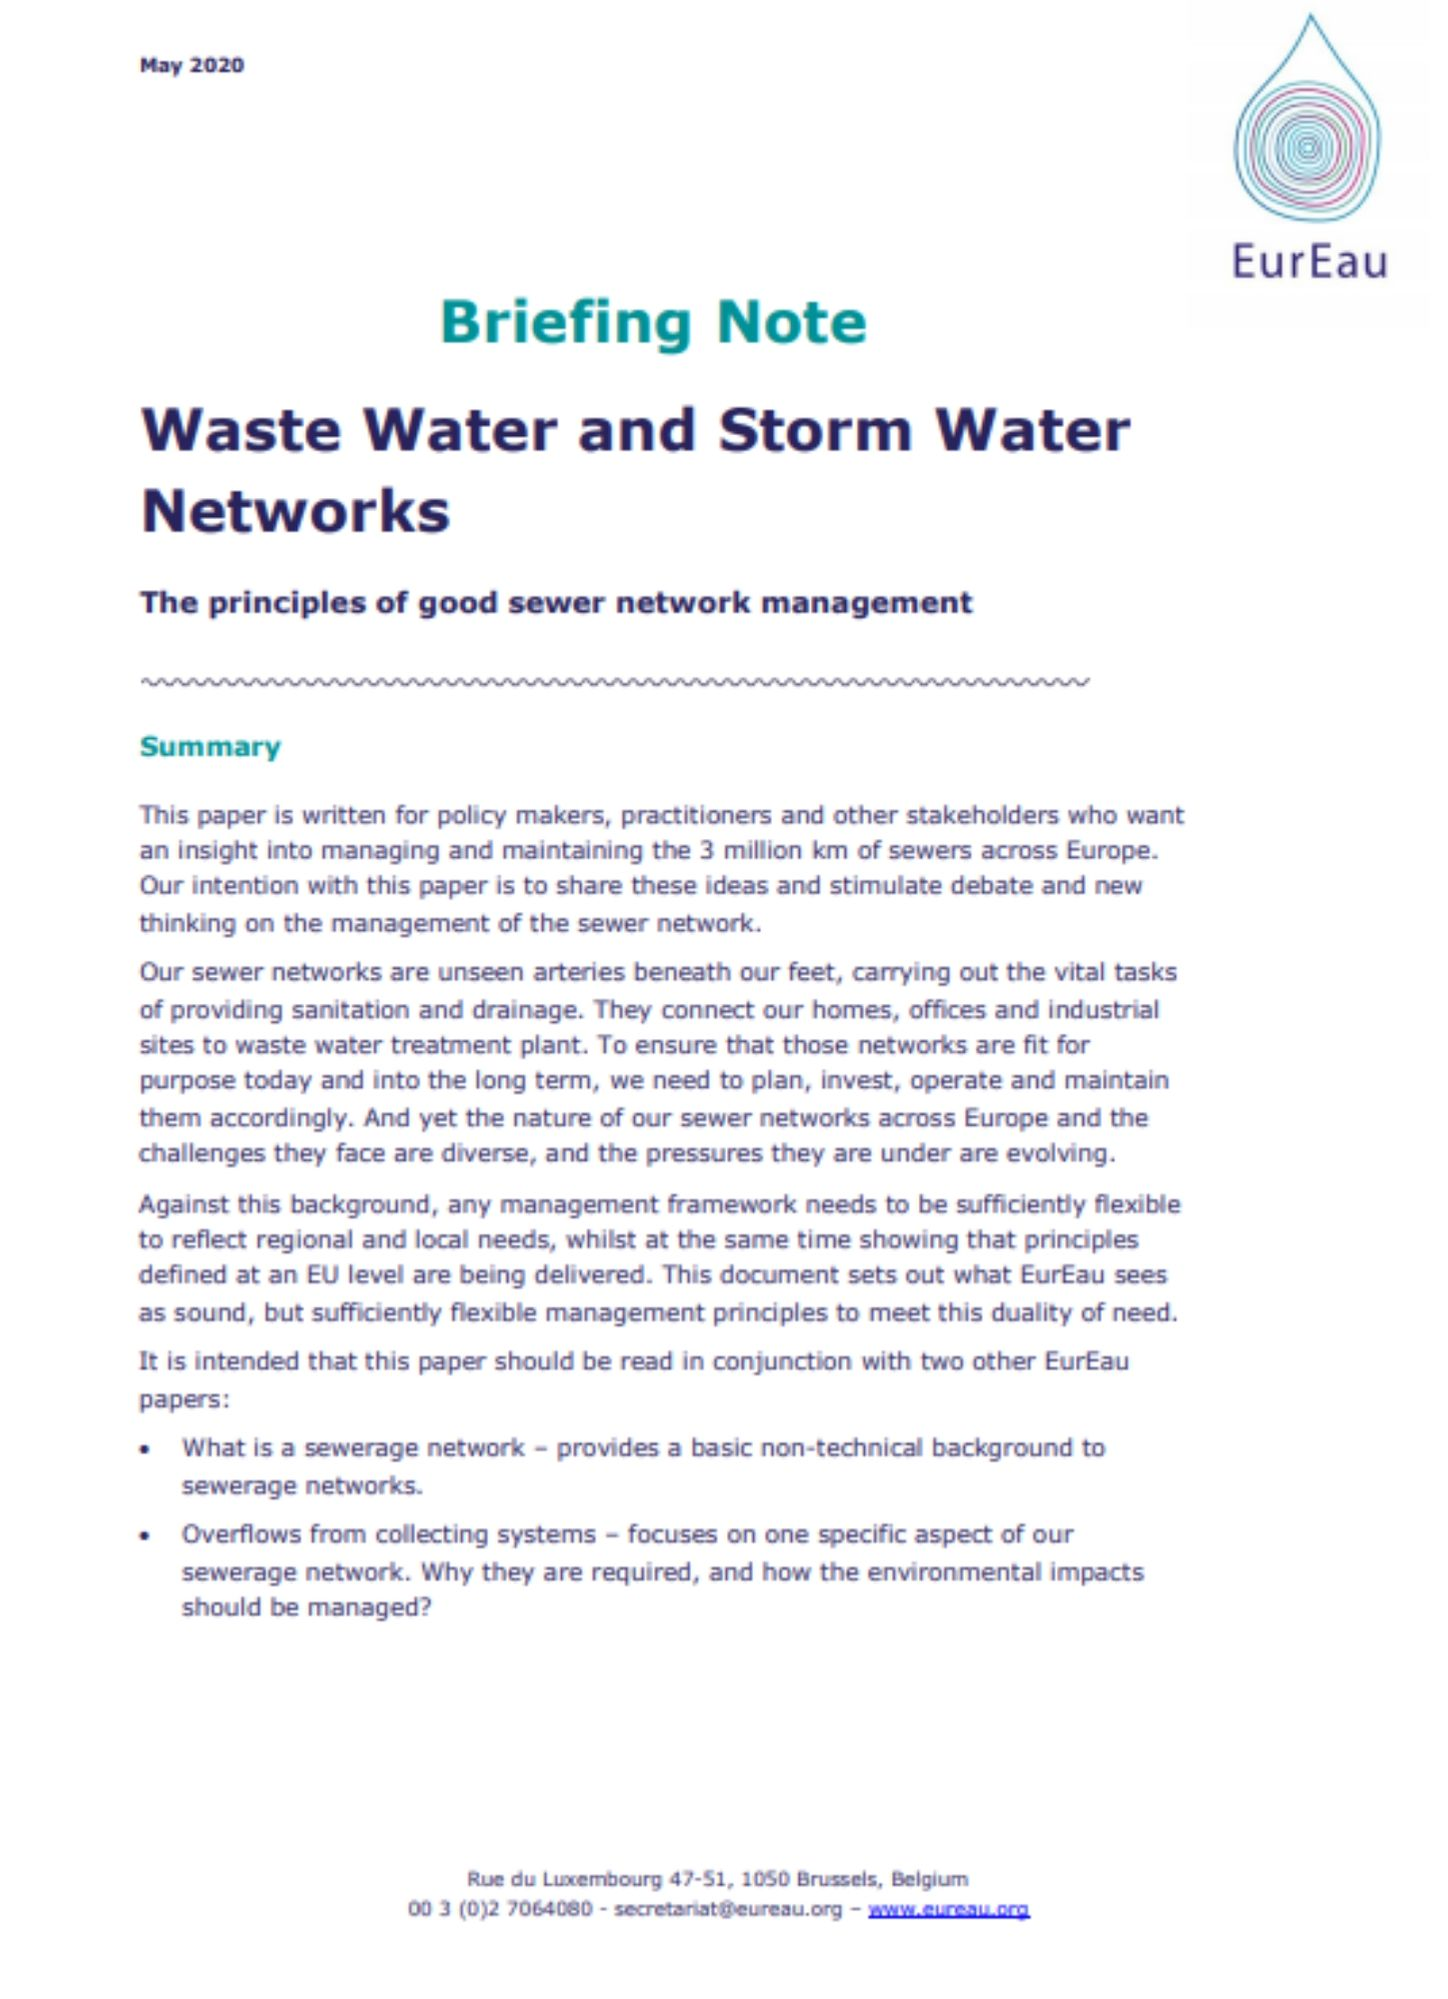 Briefing note on the management of the waste water and storm water networks